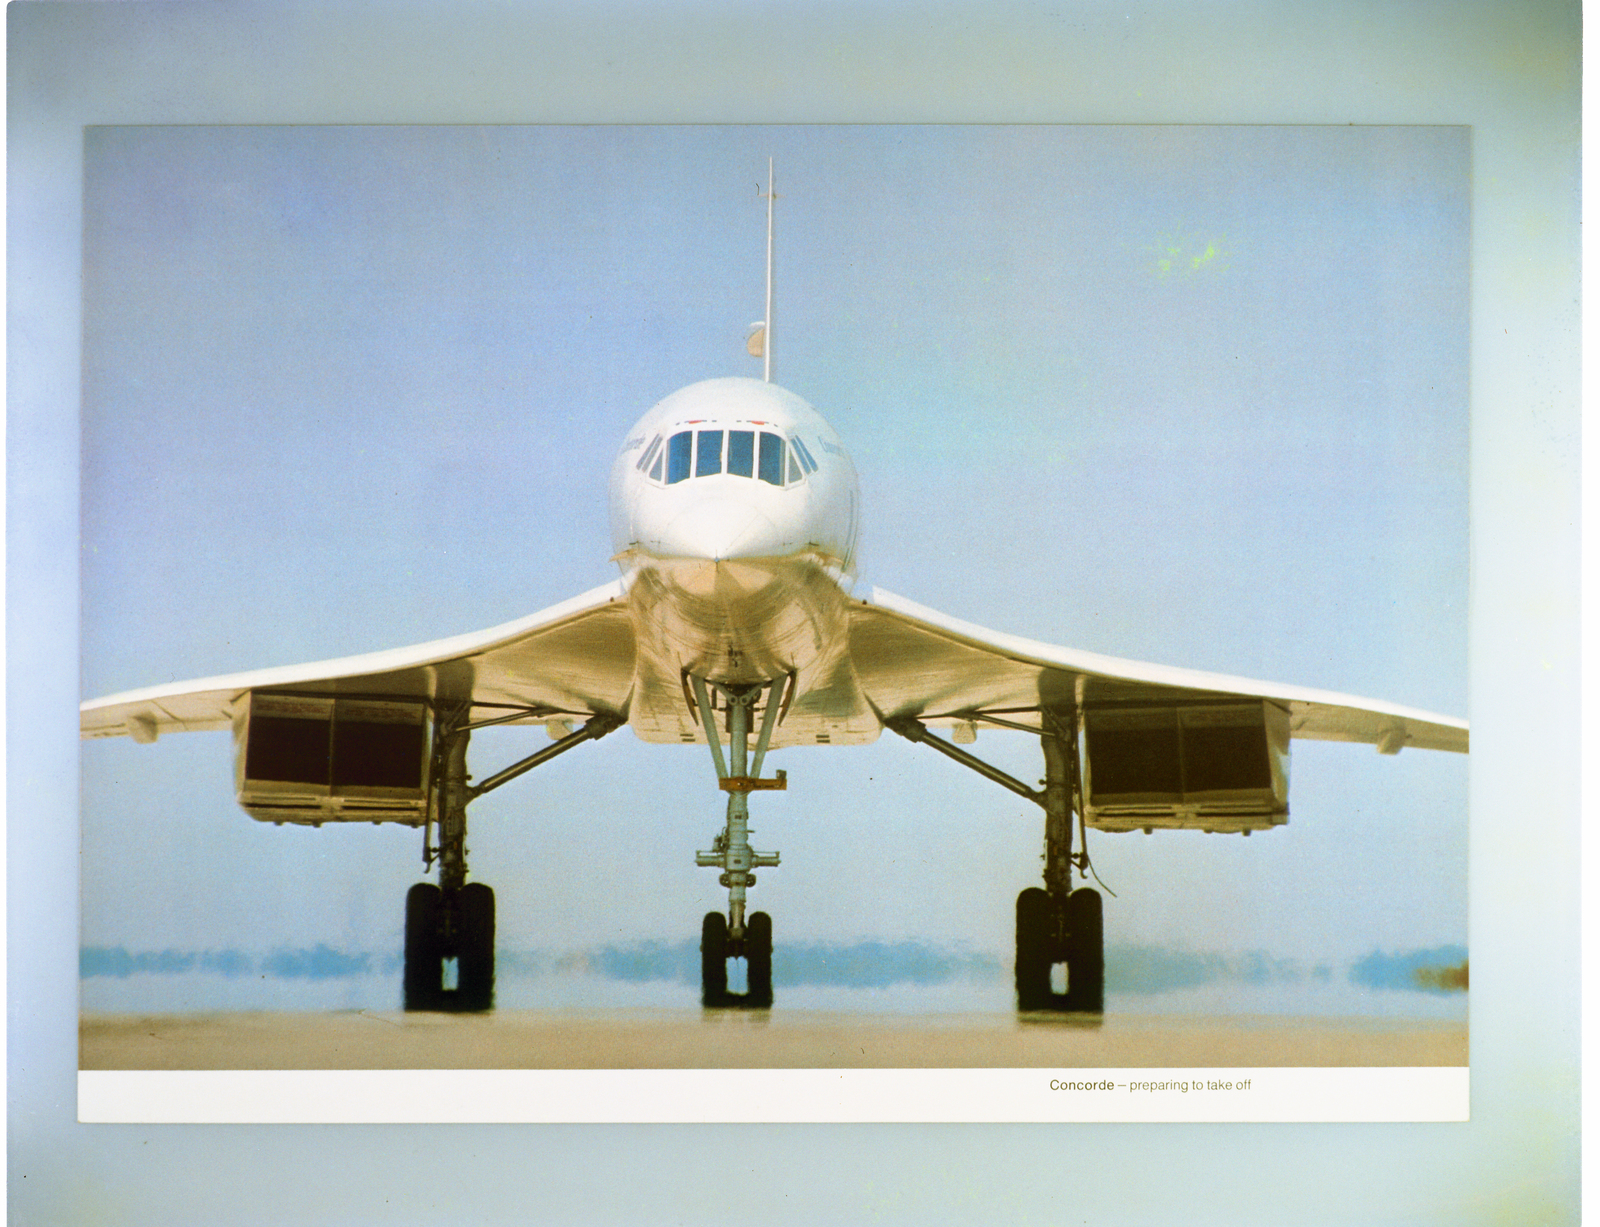 CONCORDE  - BRITISH FRENCH SUPERSONIC TRANSPORT AIRPLANE